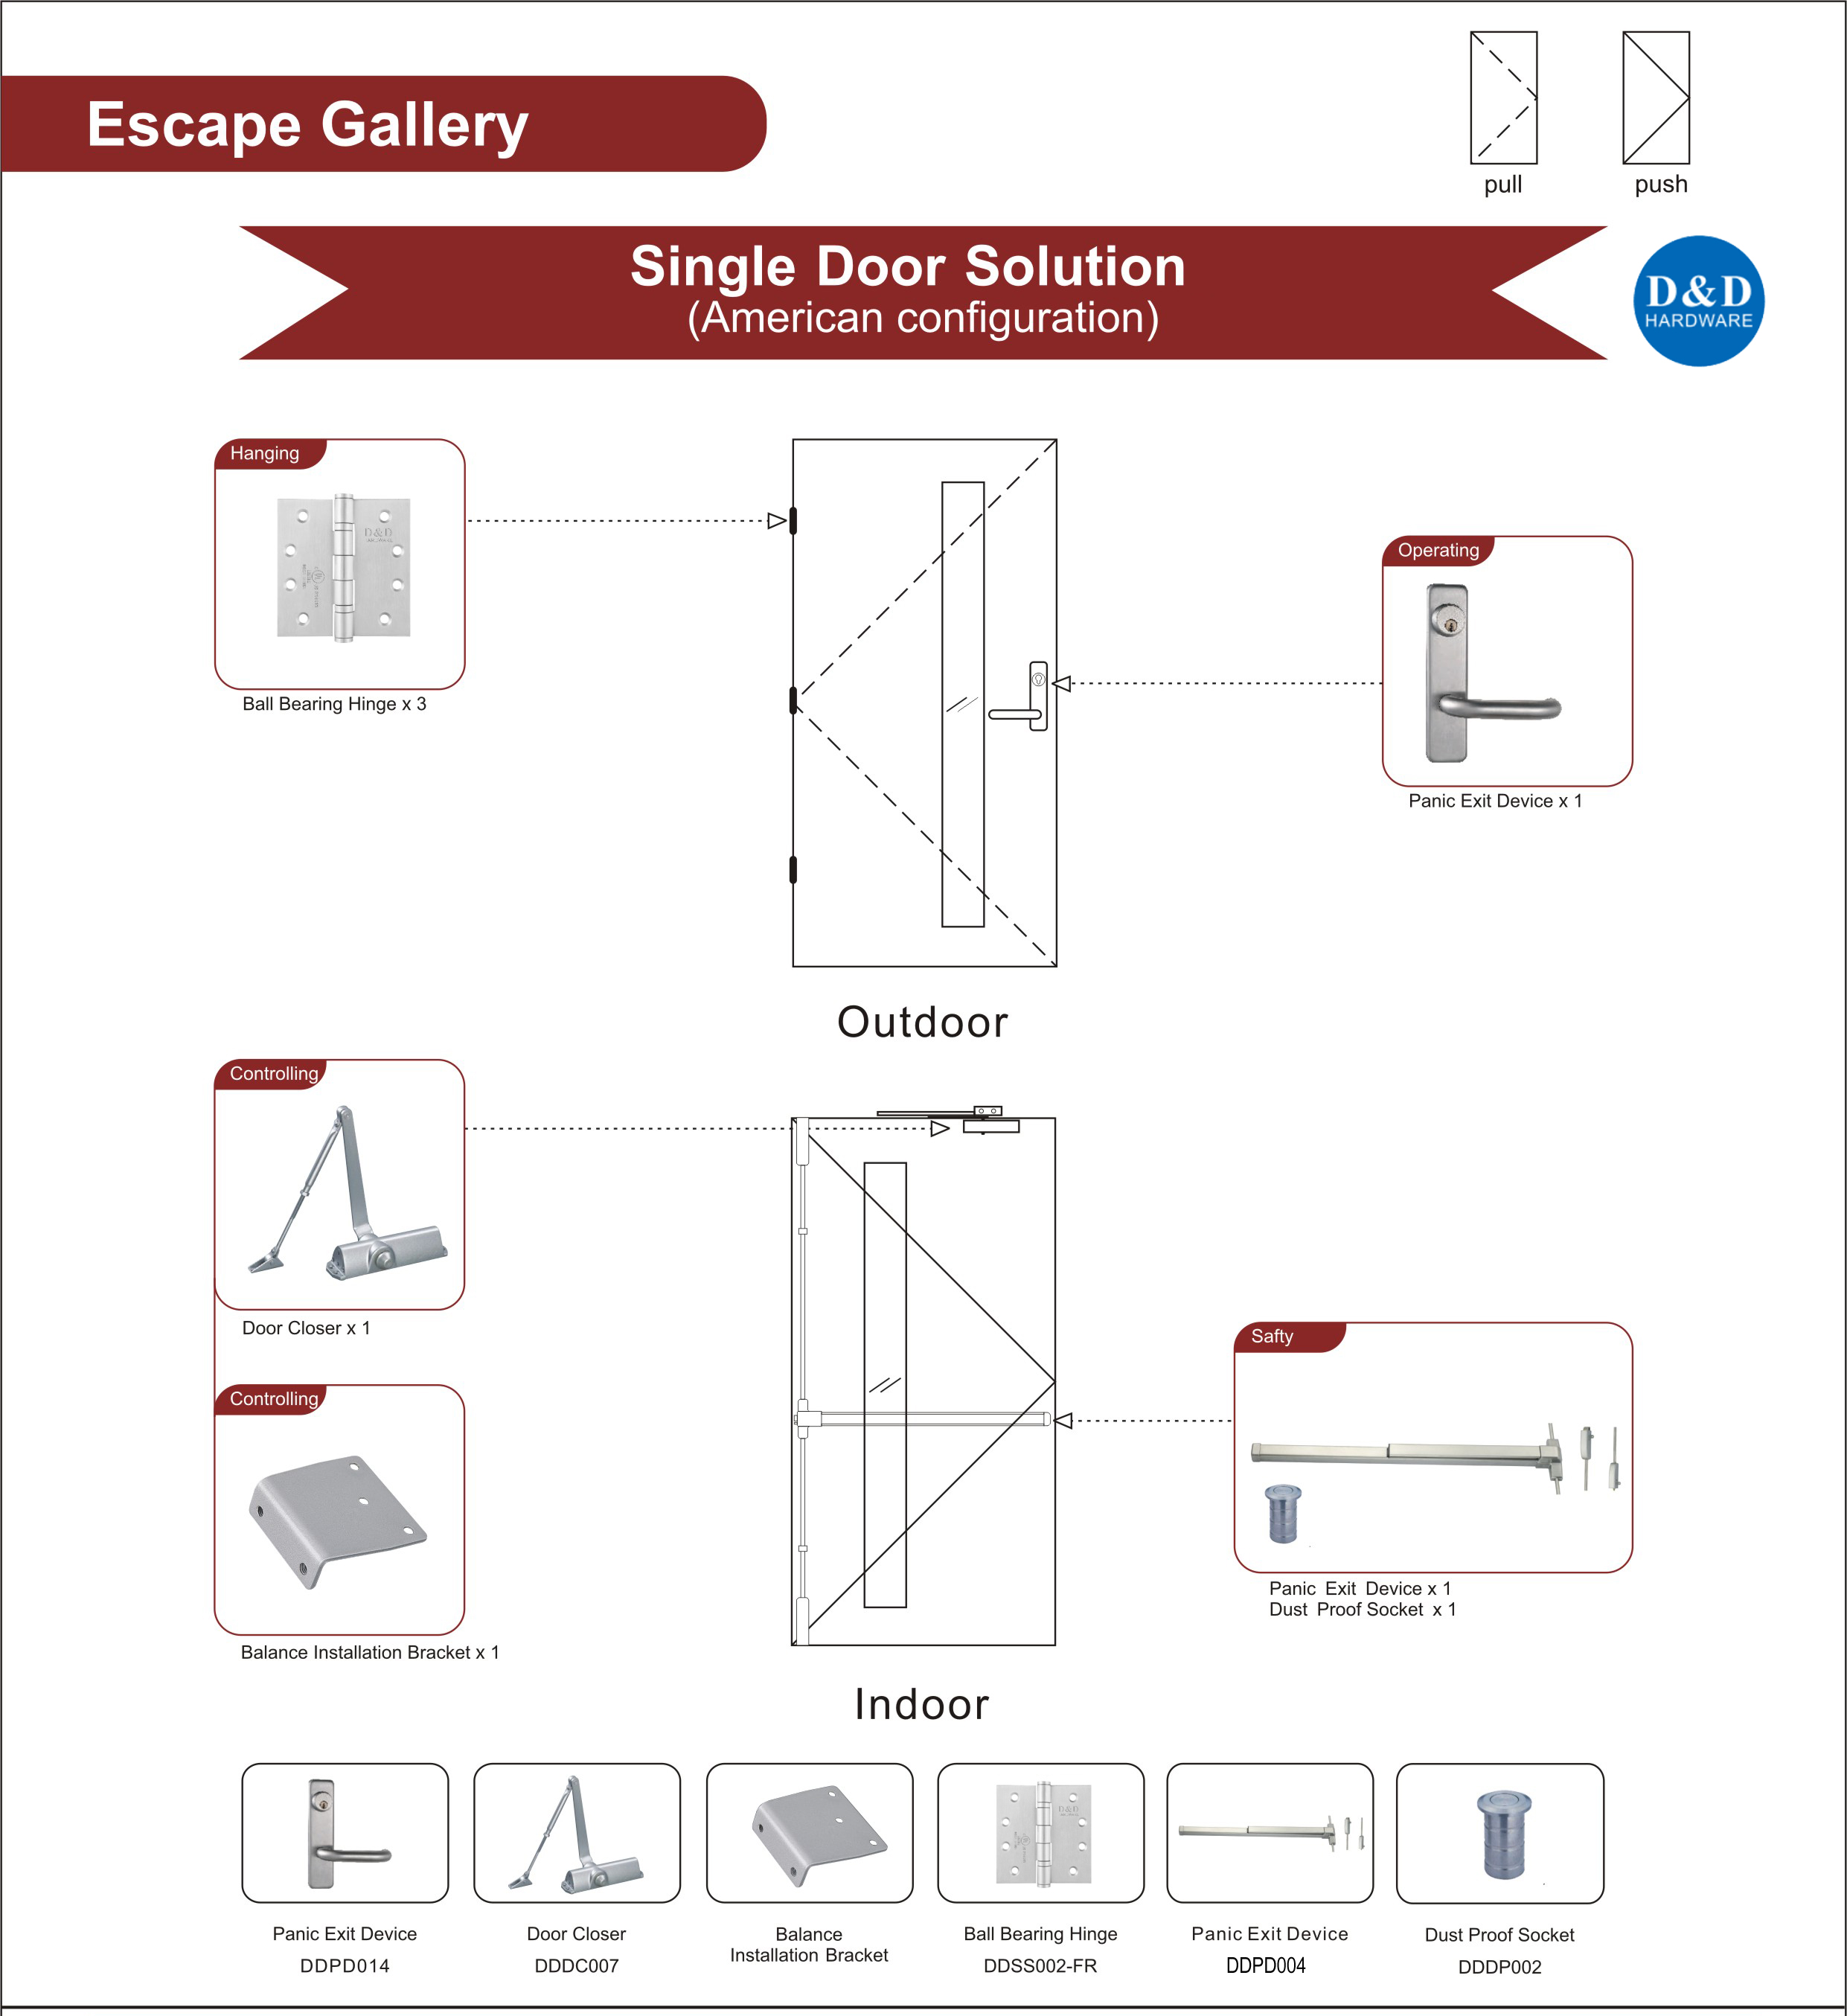 Fire Rated Steel Door Hardware For Escape Gallery Single Door